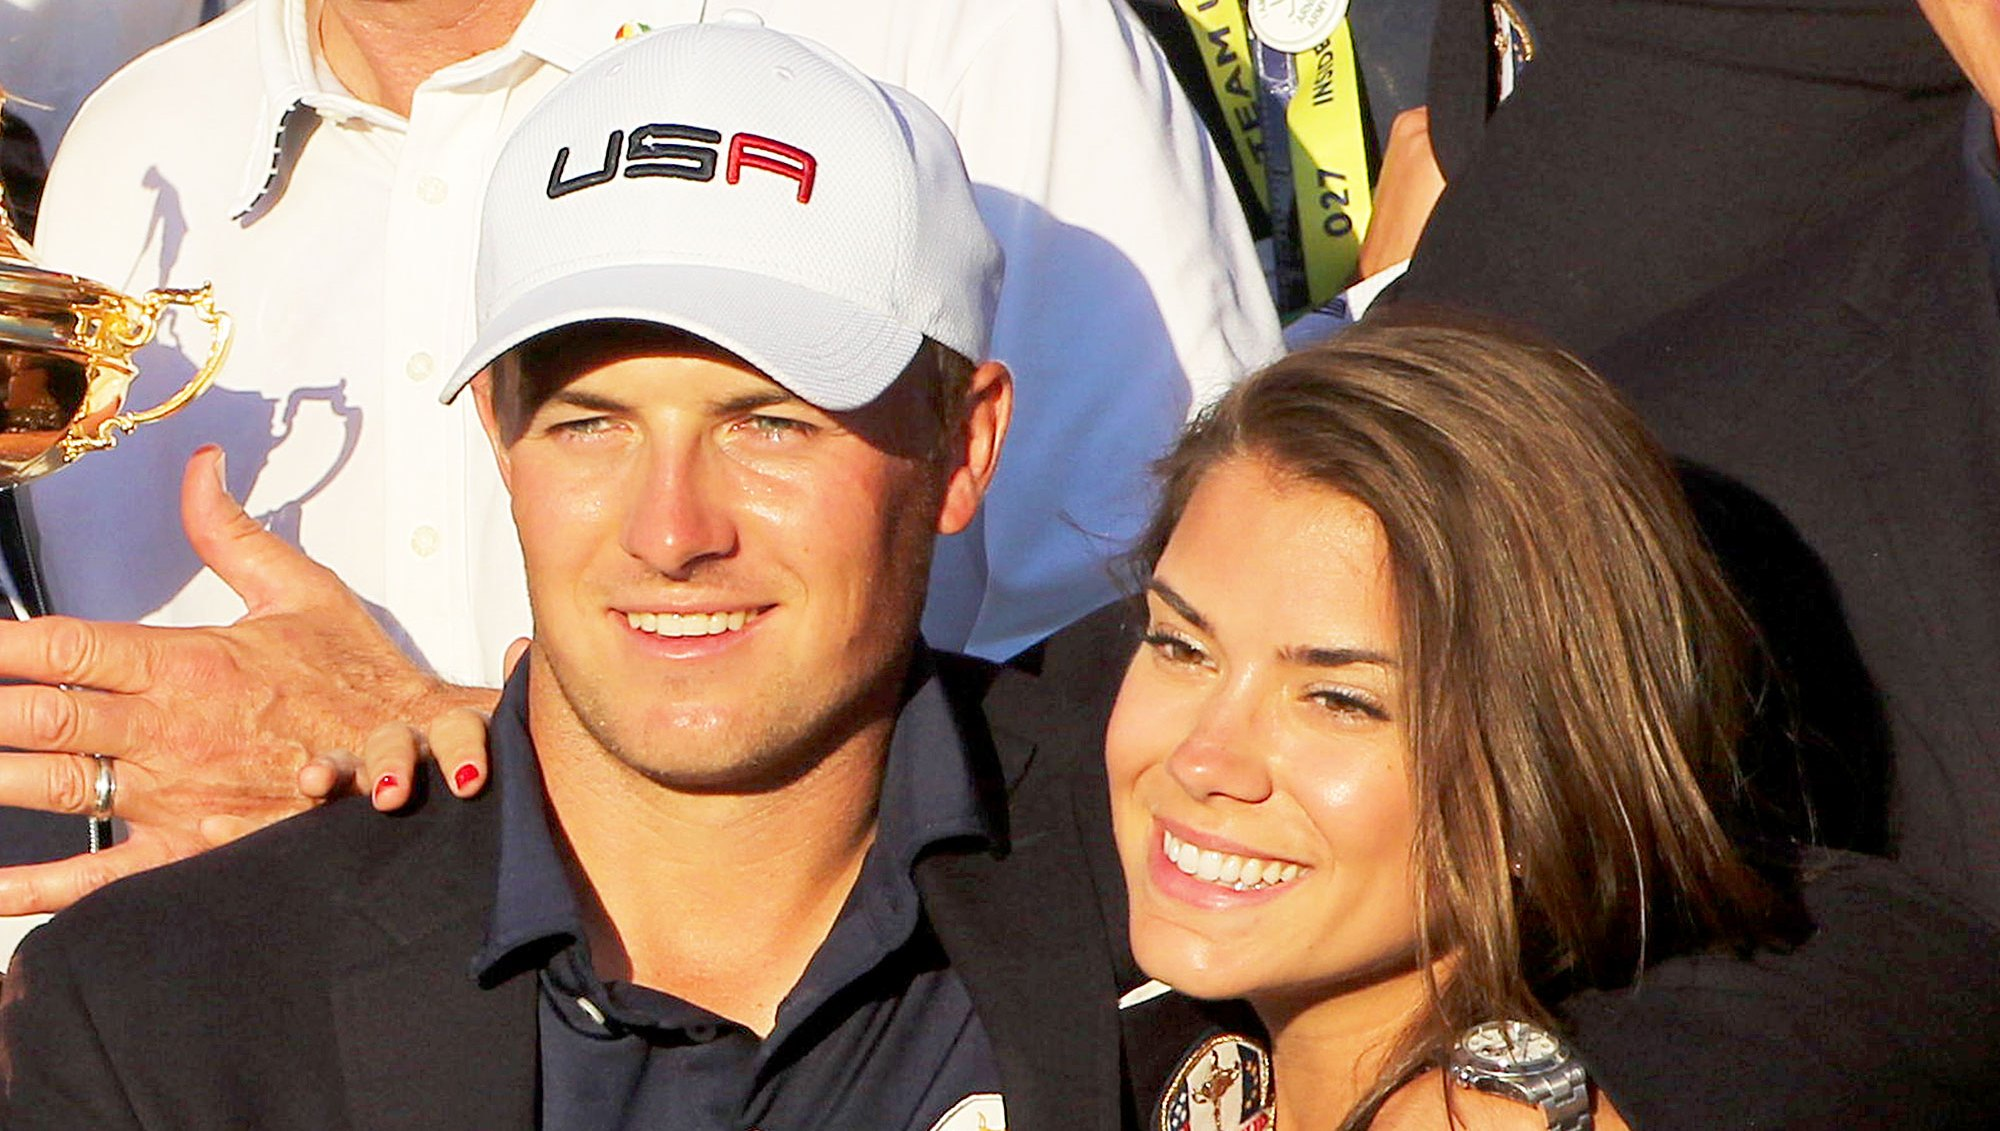 Jordan Spieth and Annie Verret celebrate with the Ryder Cup after the United States victory in the Ryder Cup tournament at Hazeltine National Golf Club on October 02, 2016 in Chaska, Minnesota.